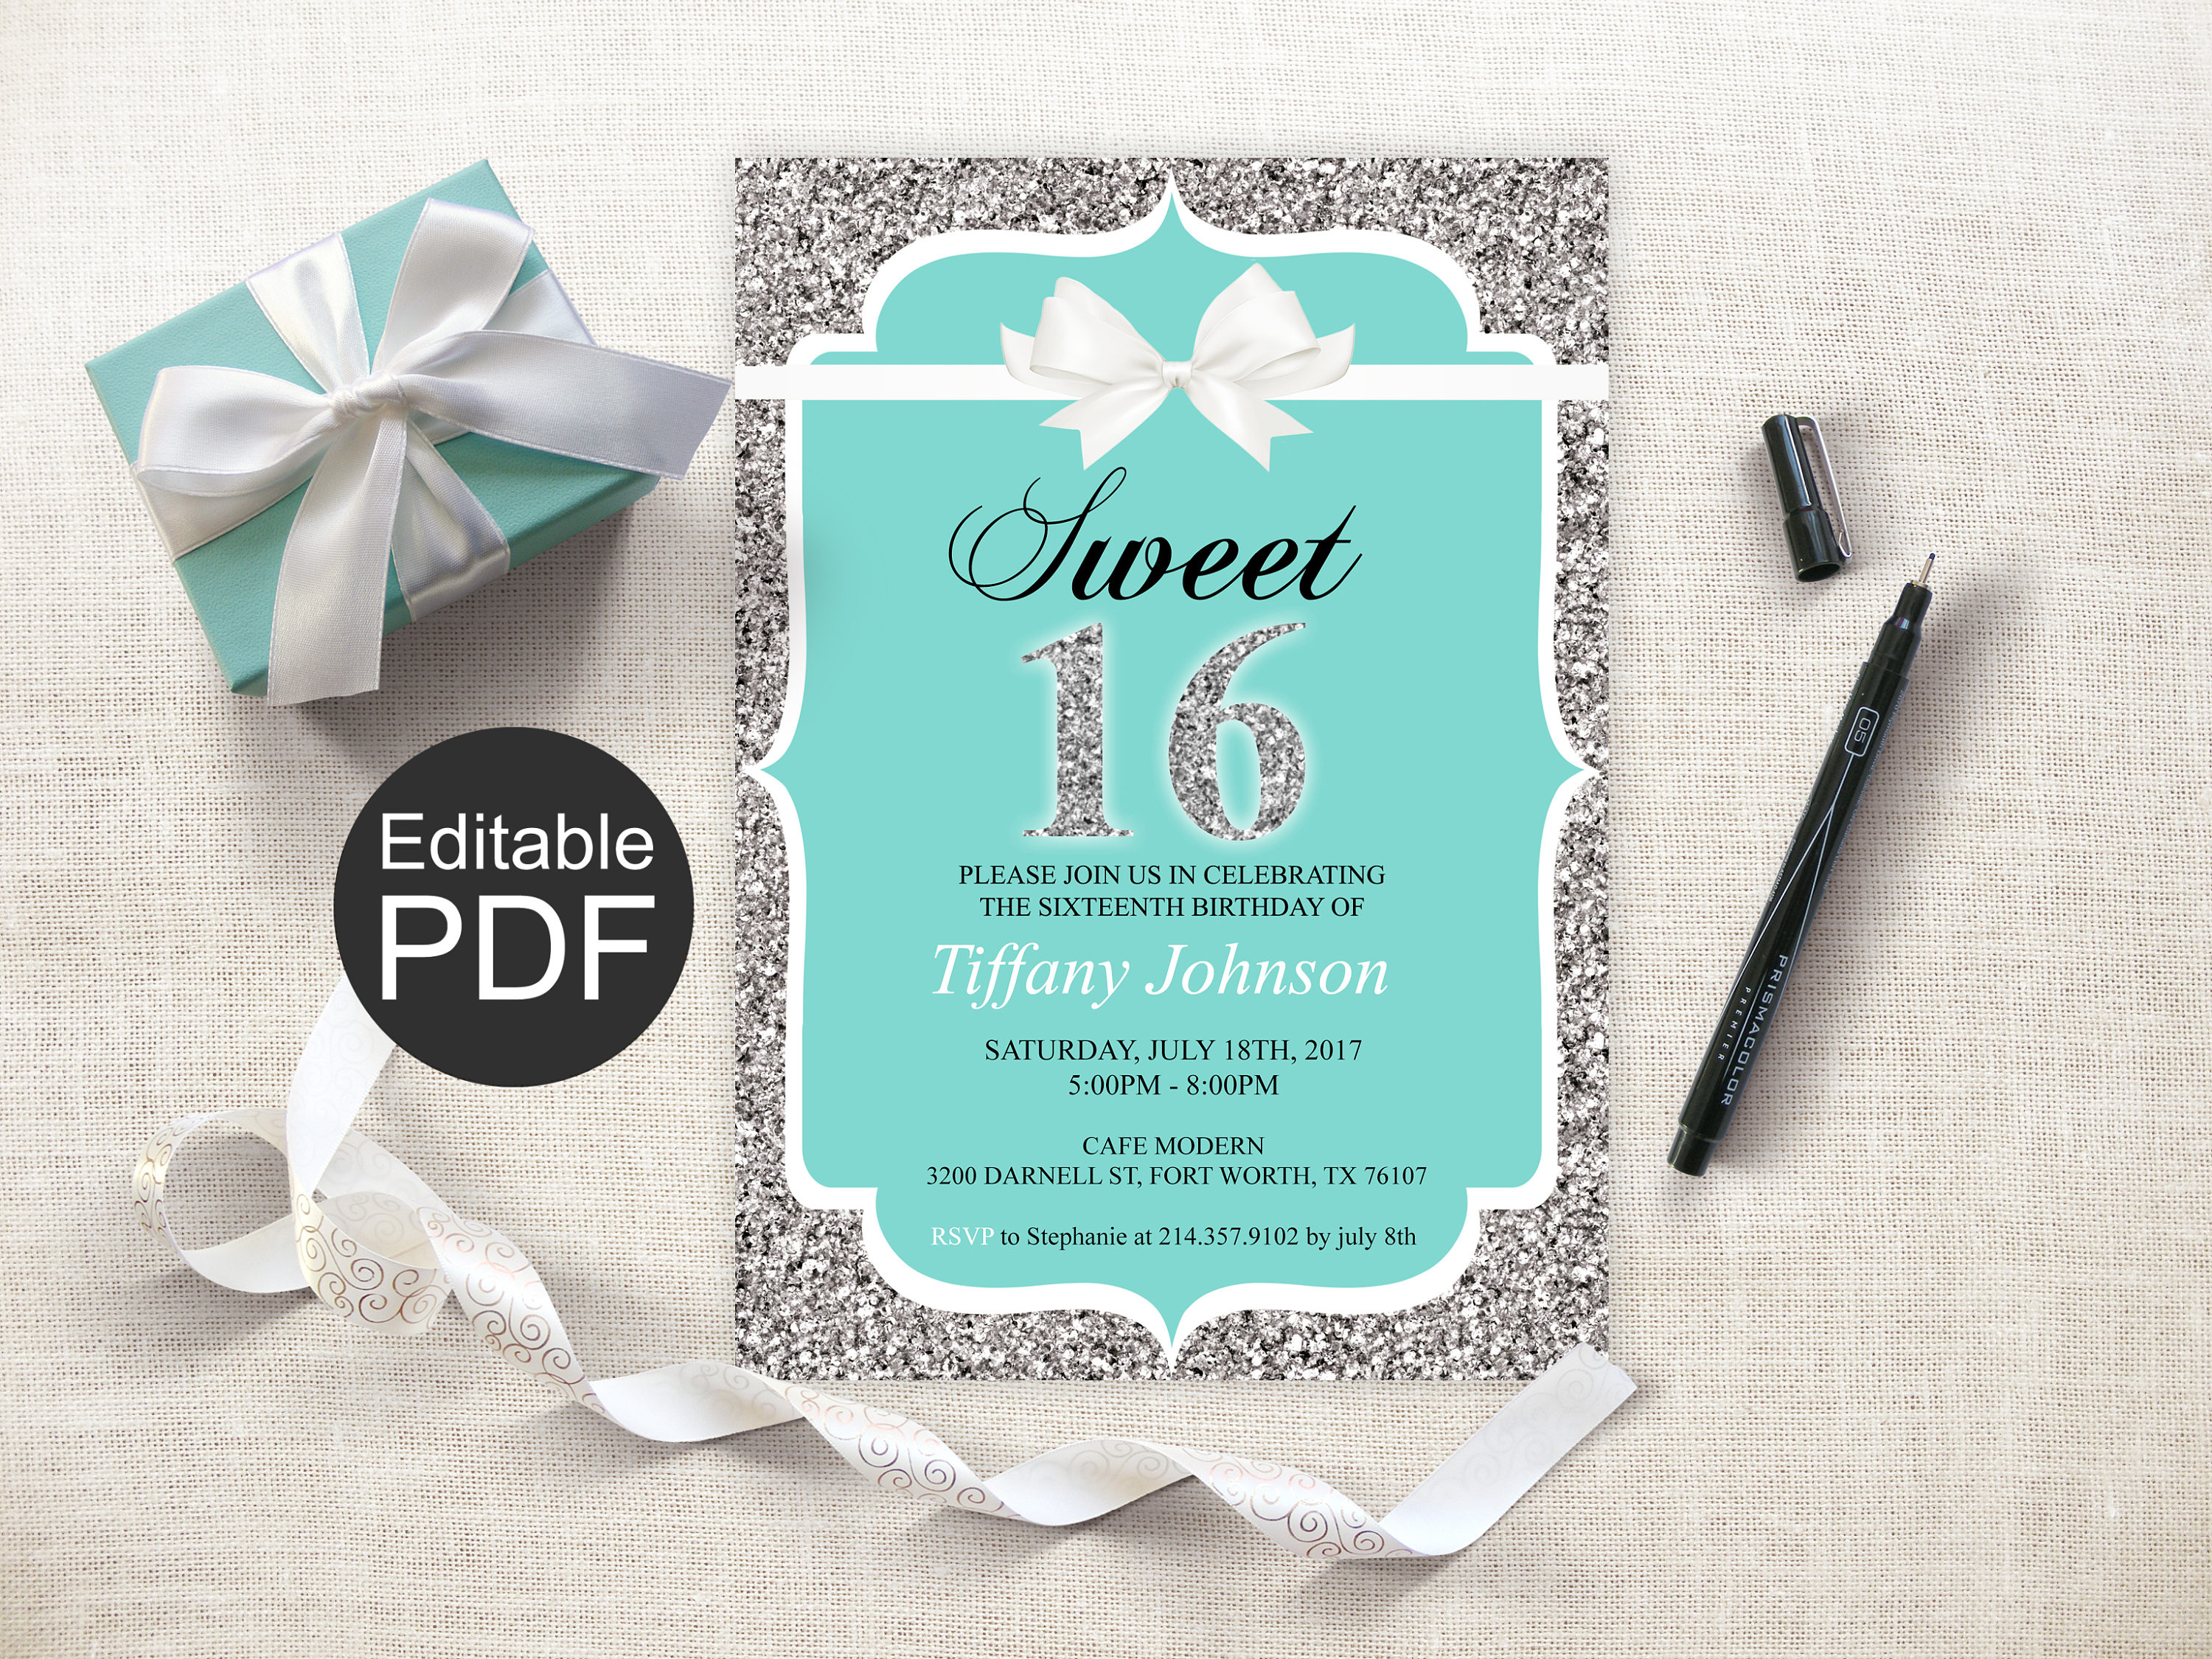 It is a picture of Printable Sweet 16 Invitations in white